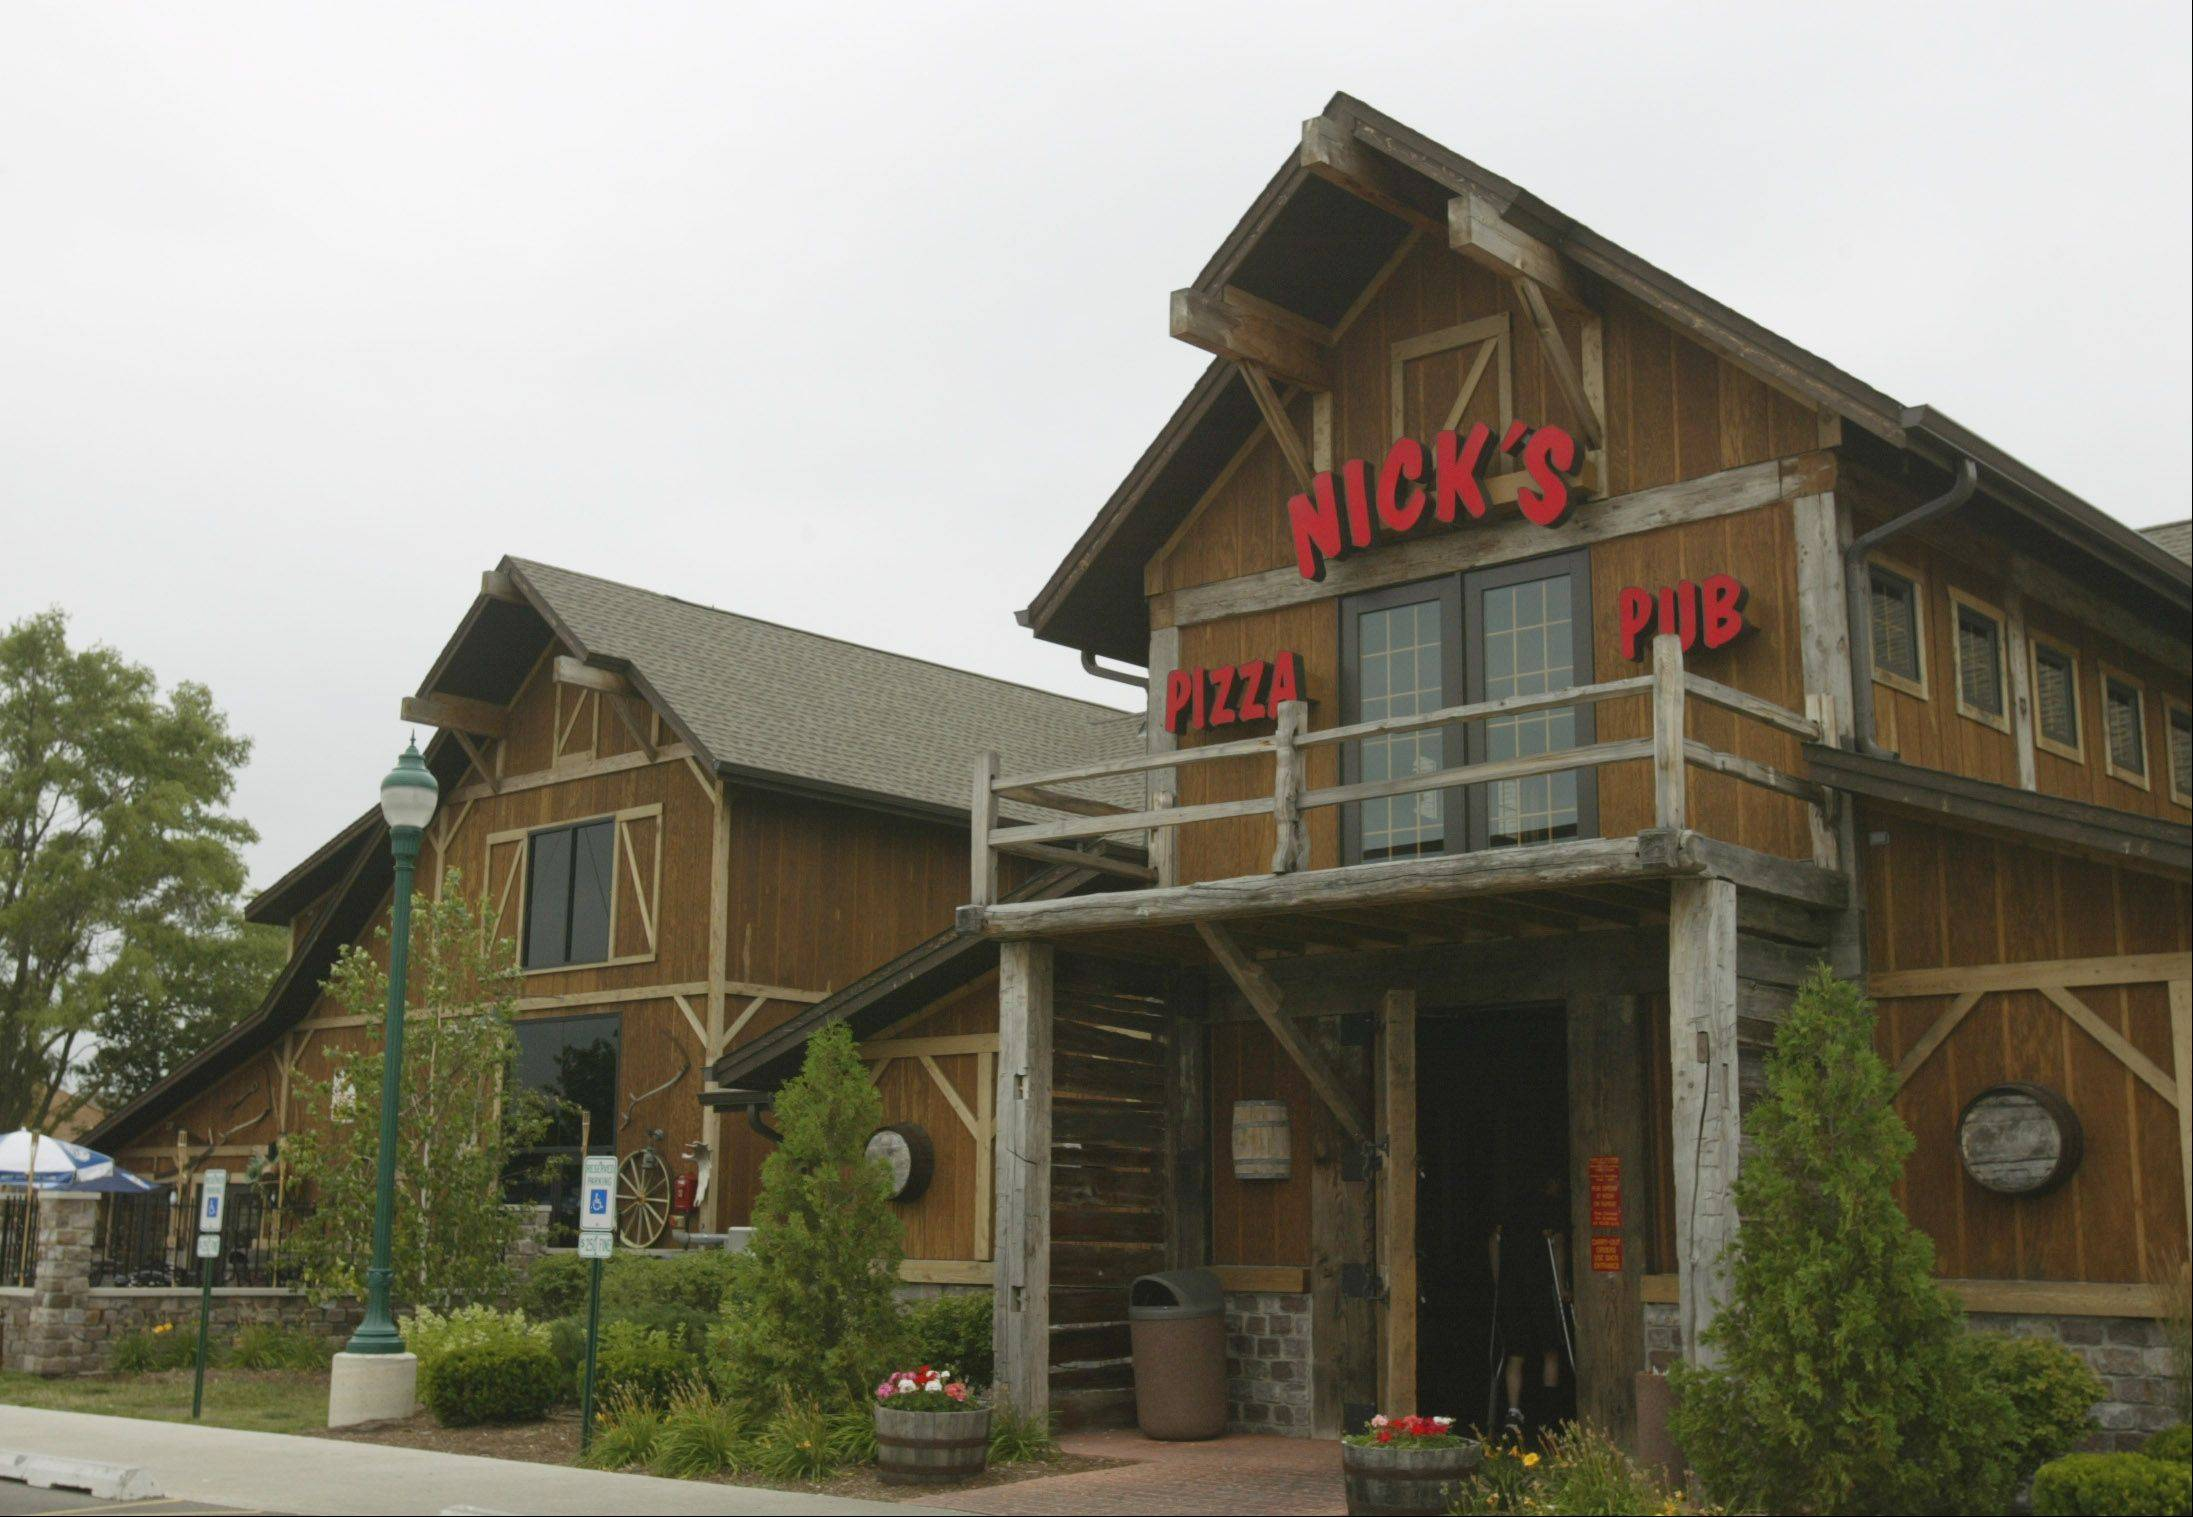 The Elgin location of Nick's Pizza and Pub has been the weak link for the company that got its start in Crystal Lake more than 16 years ago. Owner Nick Sarillo said Tuesday the restaurant's future is uncertain, but he hoped to make it through these hard times.